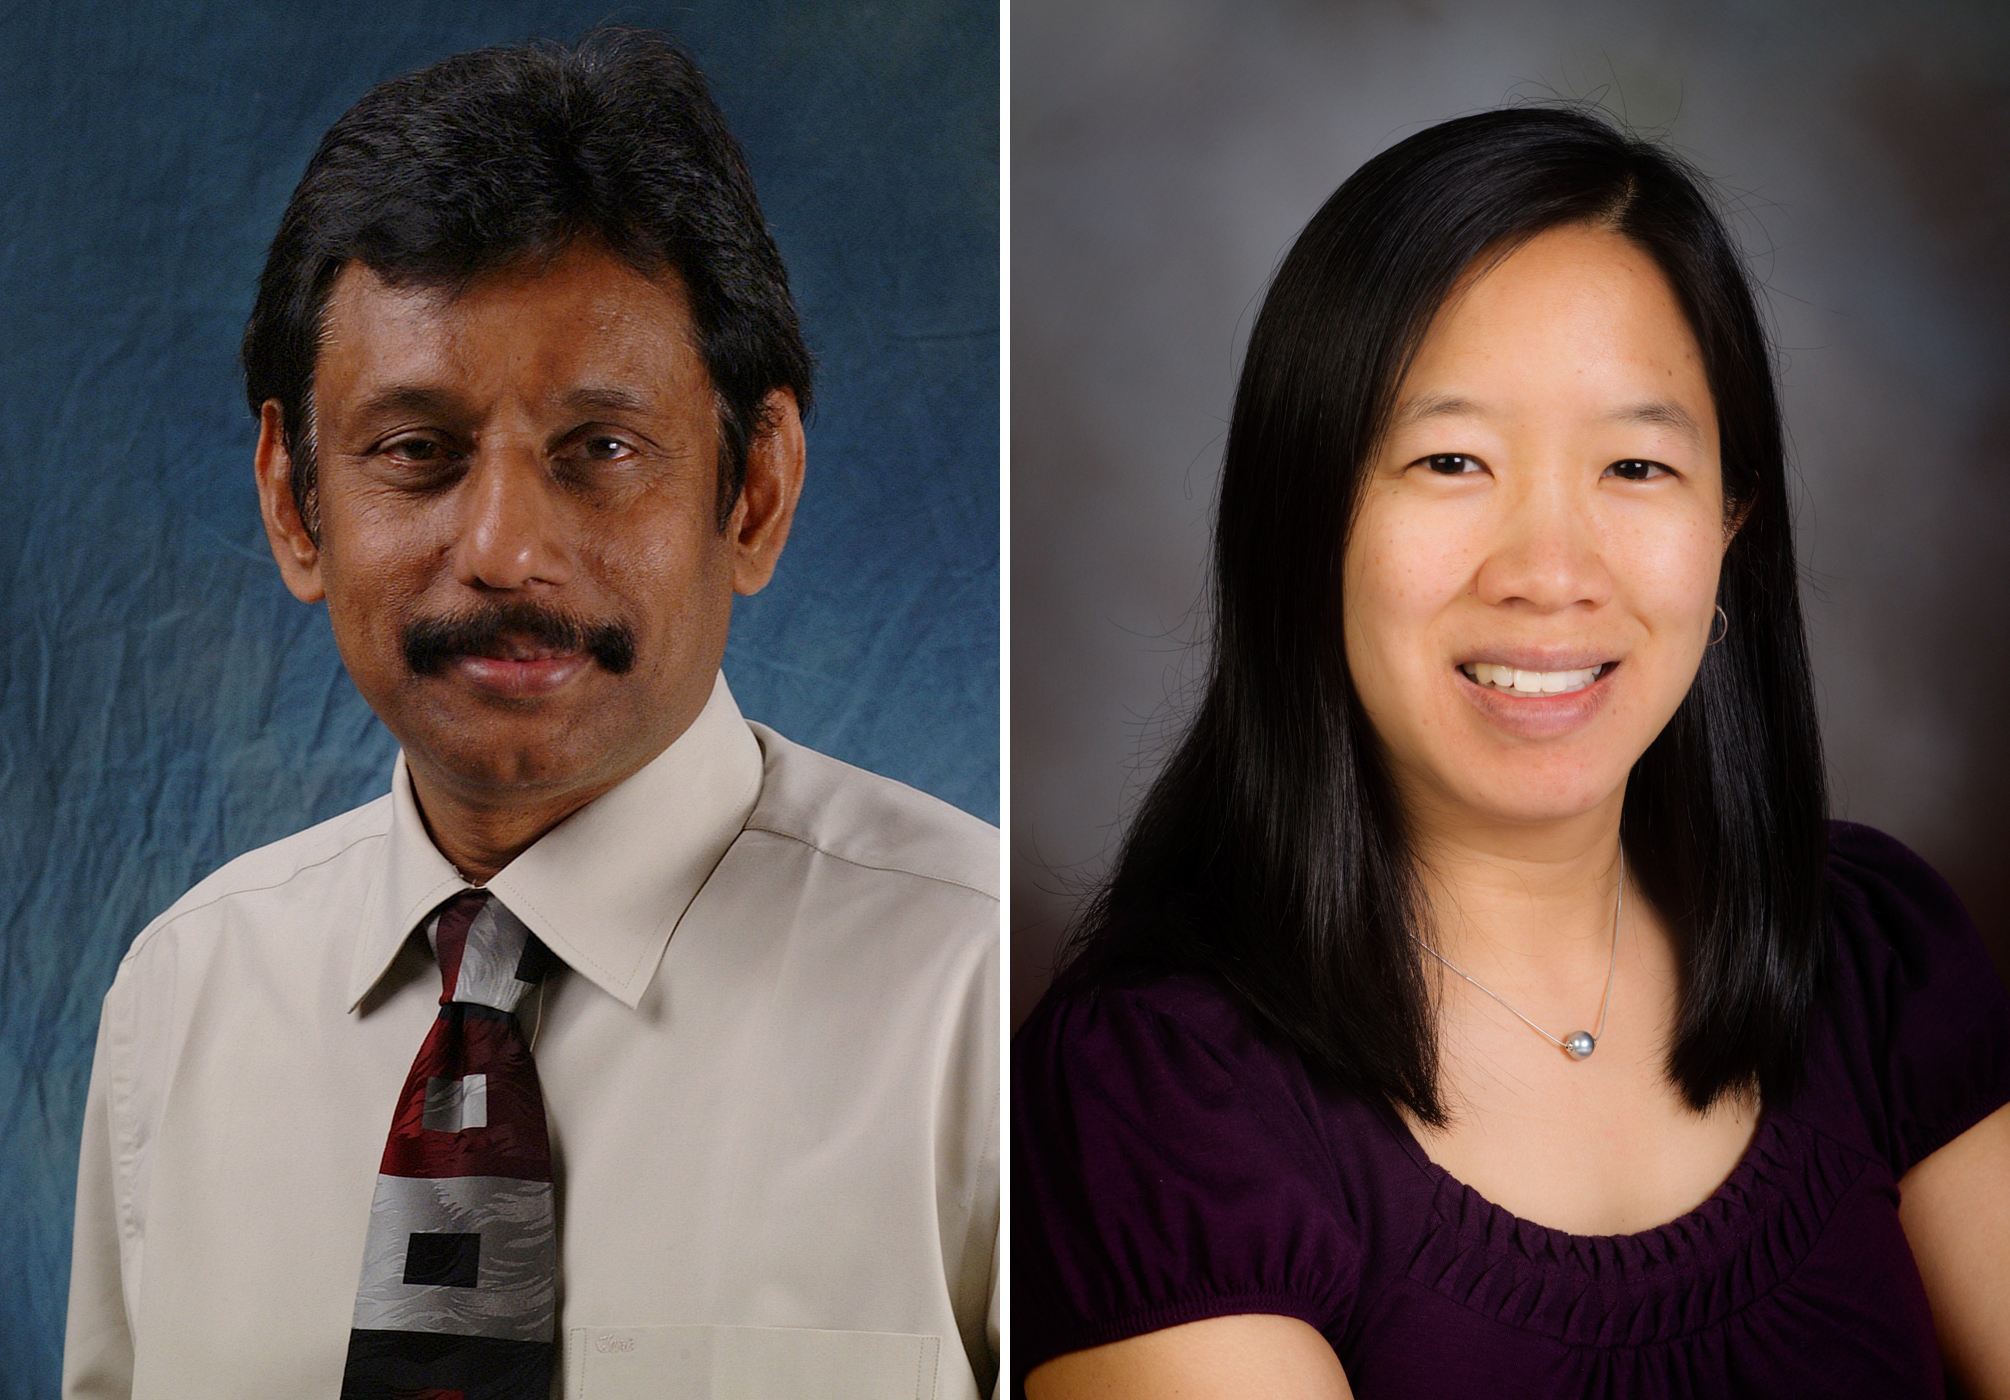 Researchers Elankumaran Subbiah and Linsey Marr